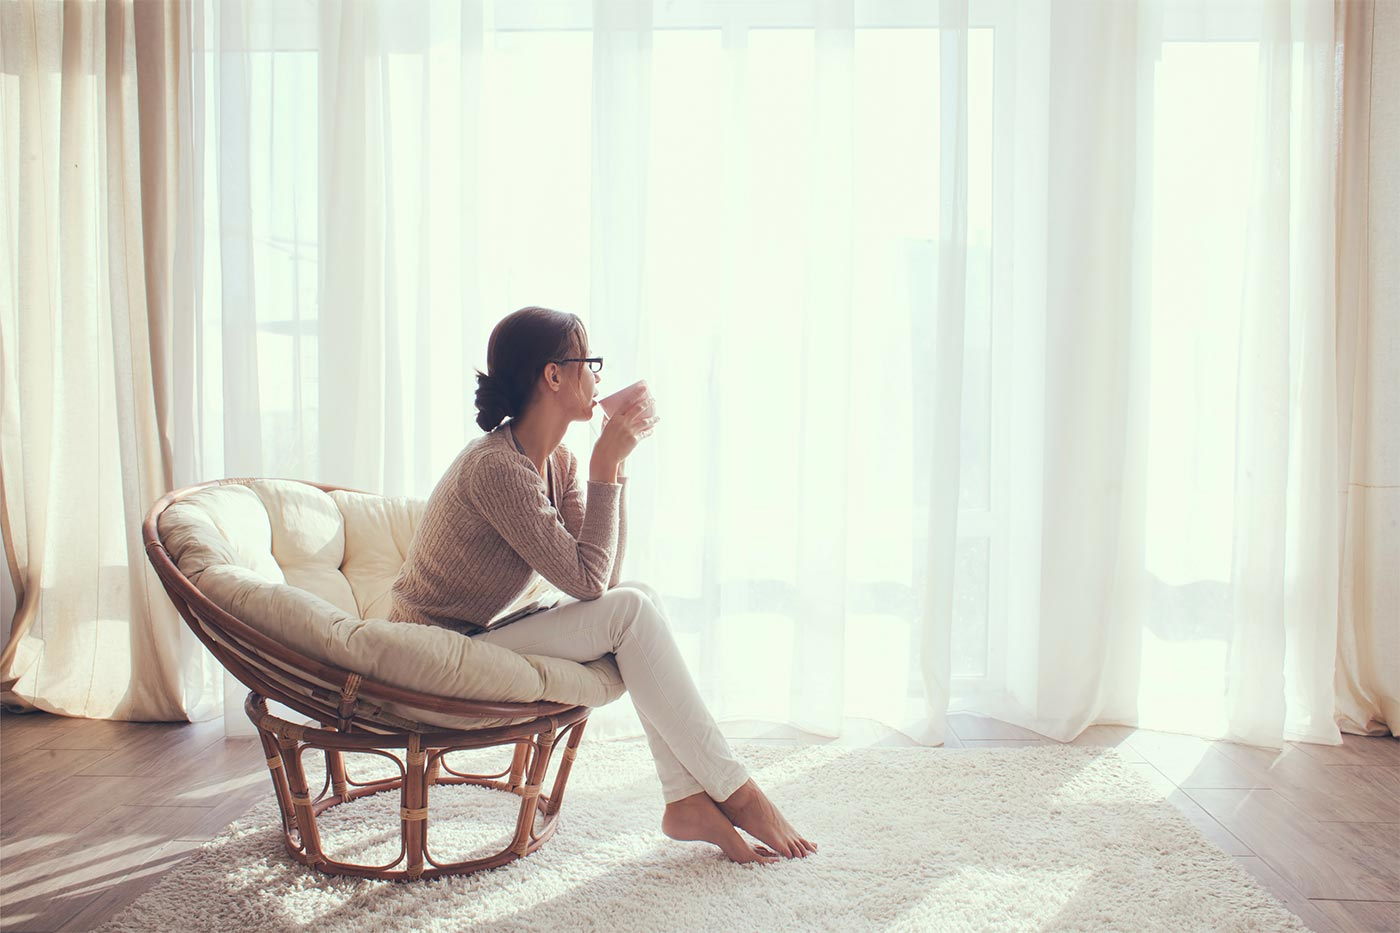 Woman sitting on a cushioned chair, sipping from a cup and looking out a window